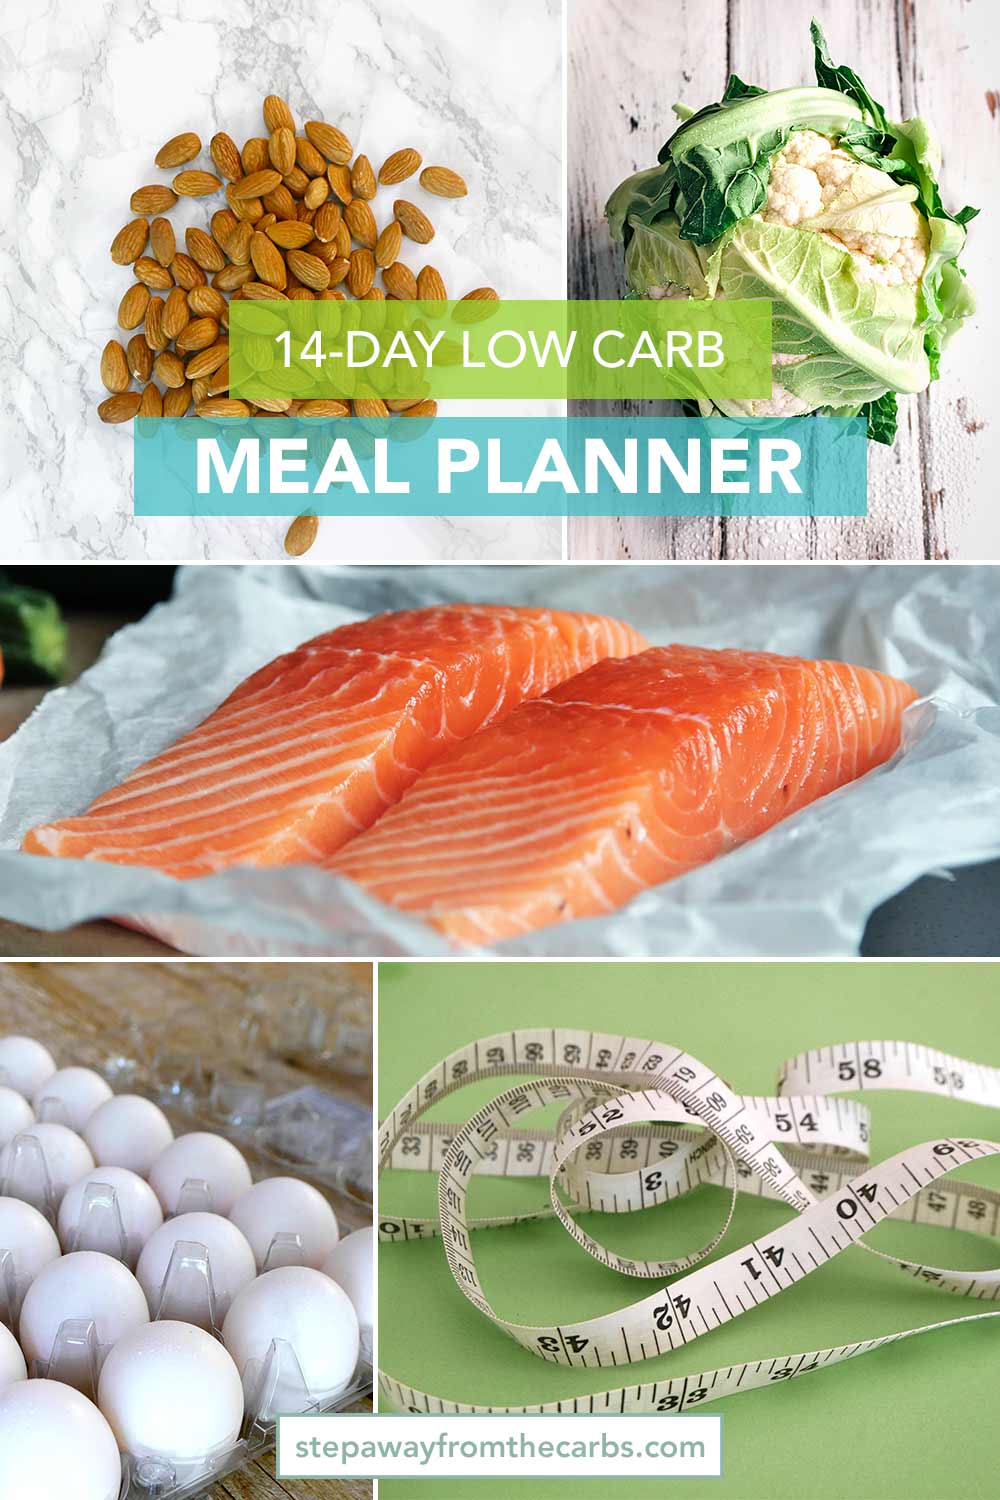 14 Day Low Carb Meal Planner - download today!